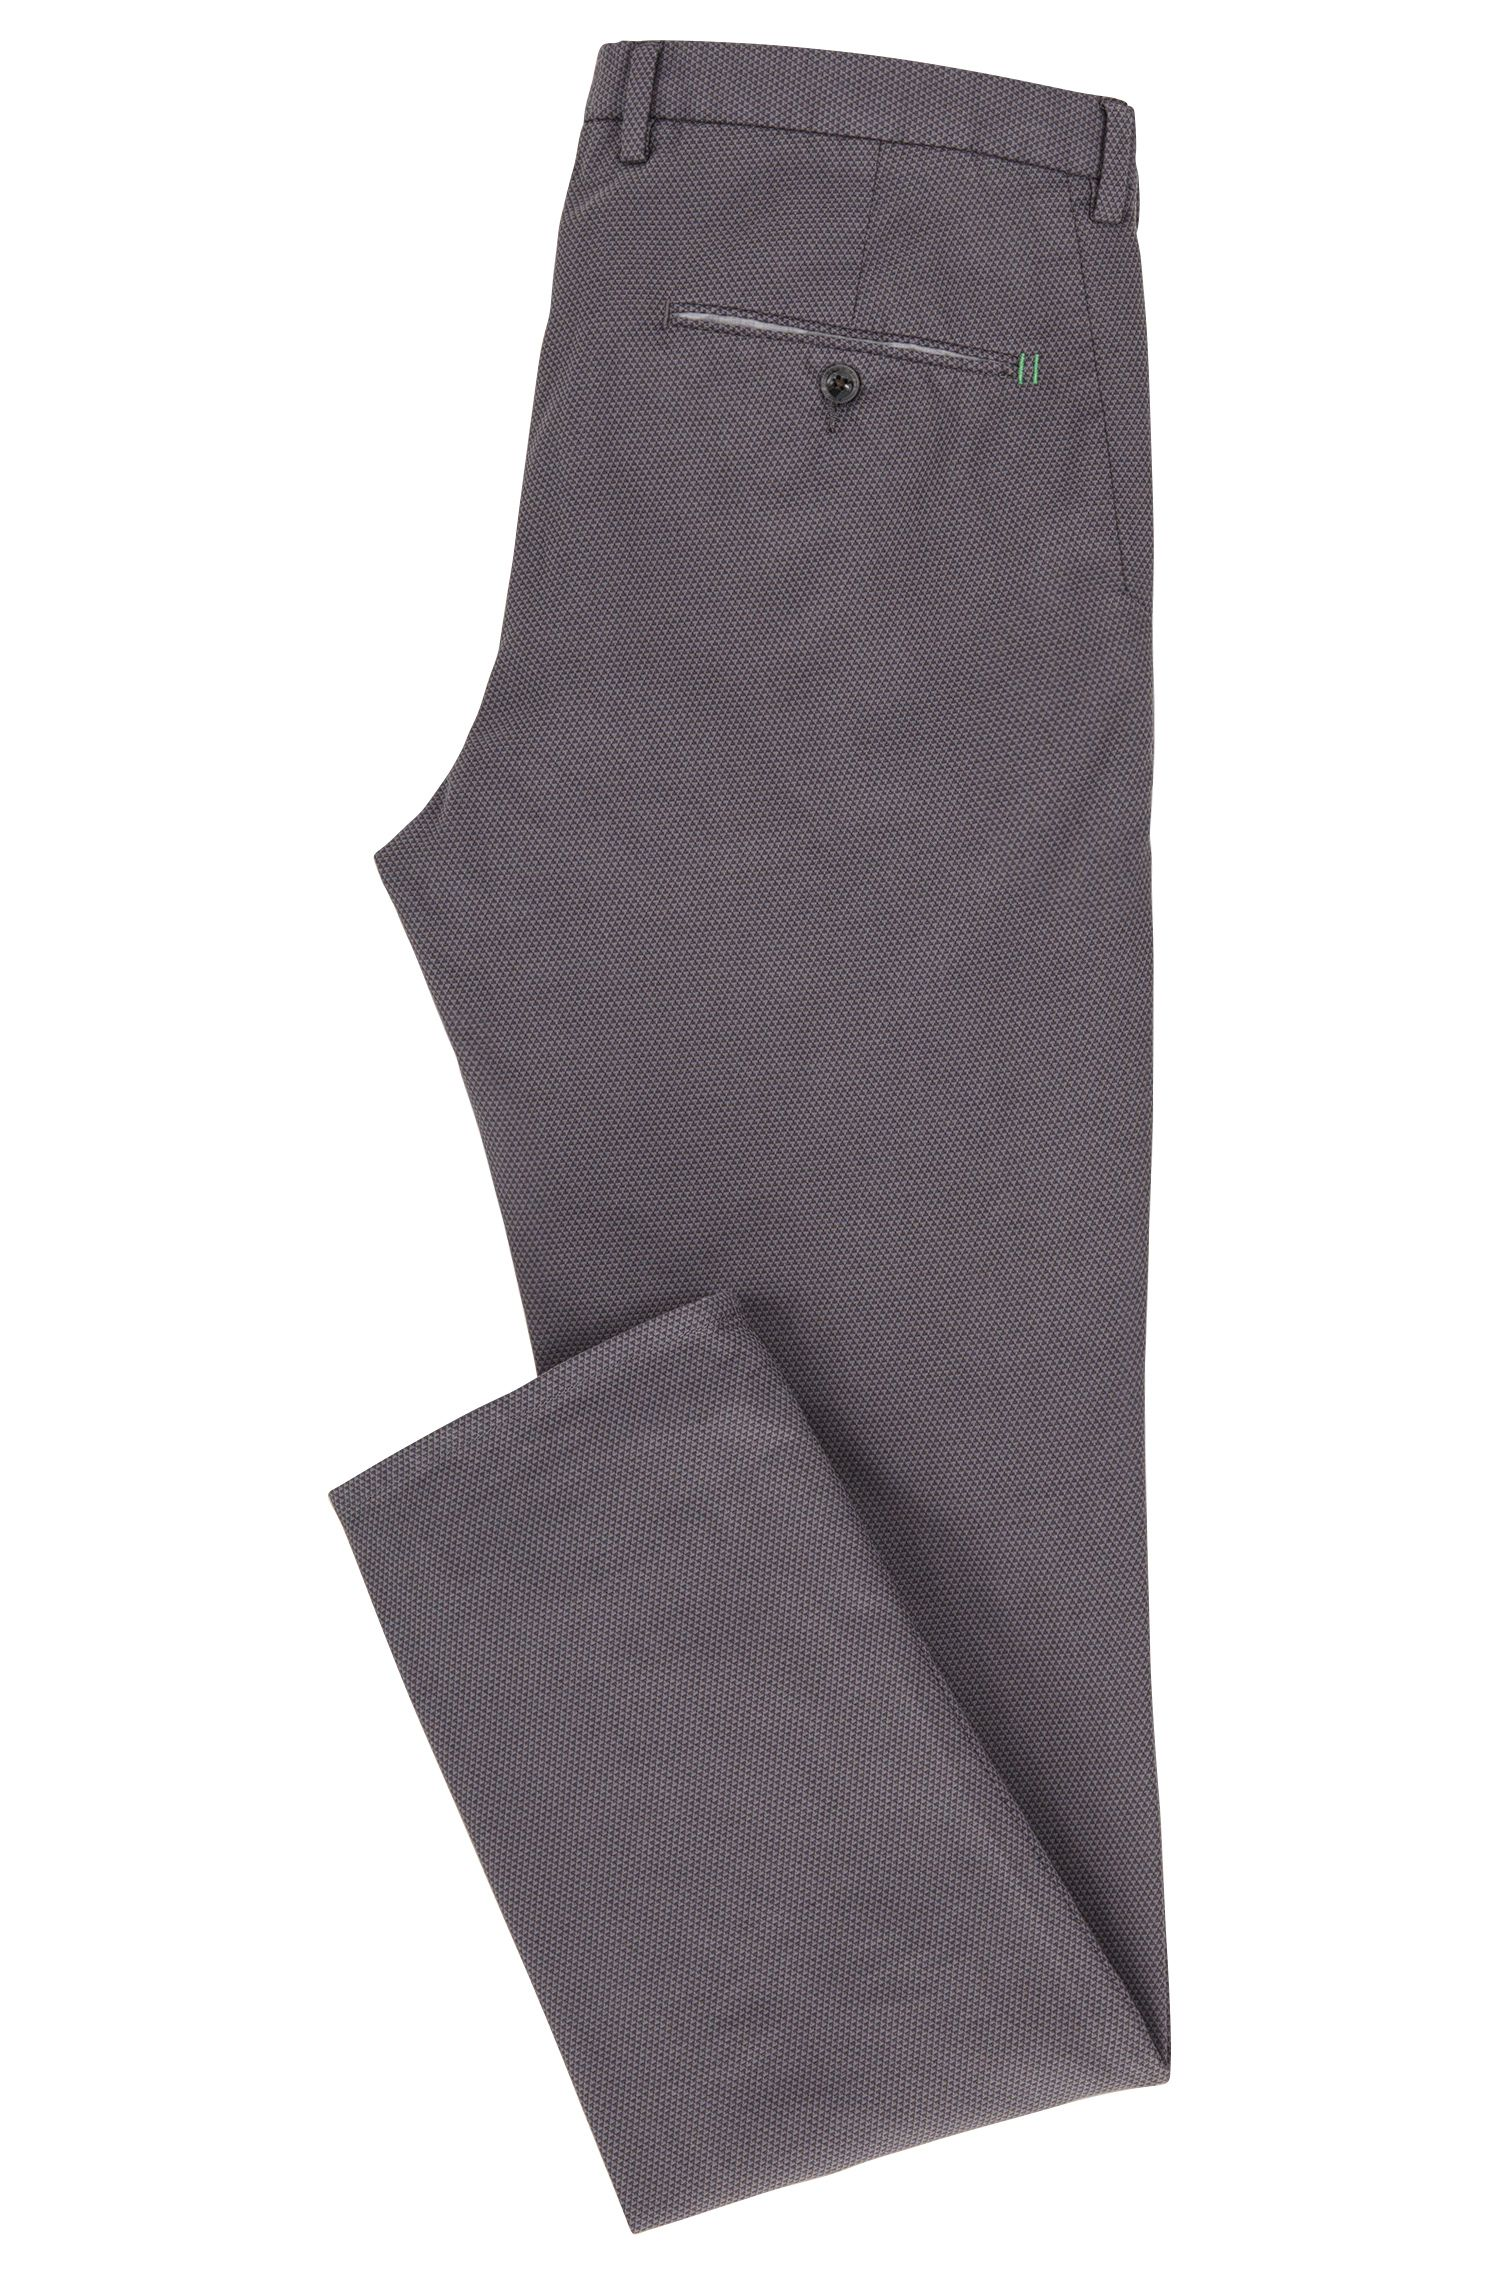 Slim-Fit Chino aus Stretch-Baumwolle mit zweifarbiger Webstruktur